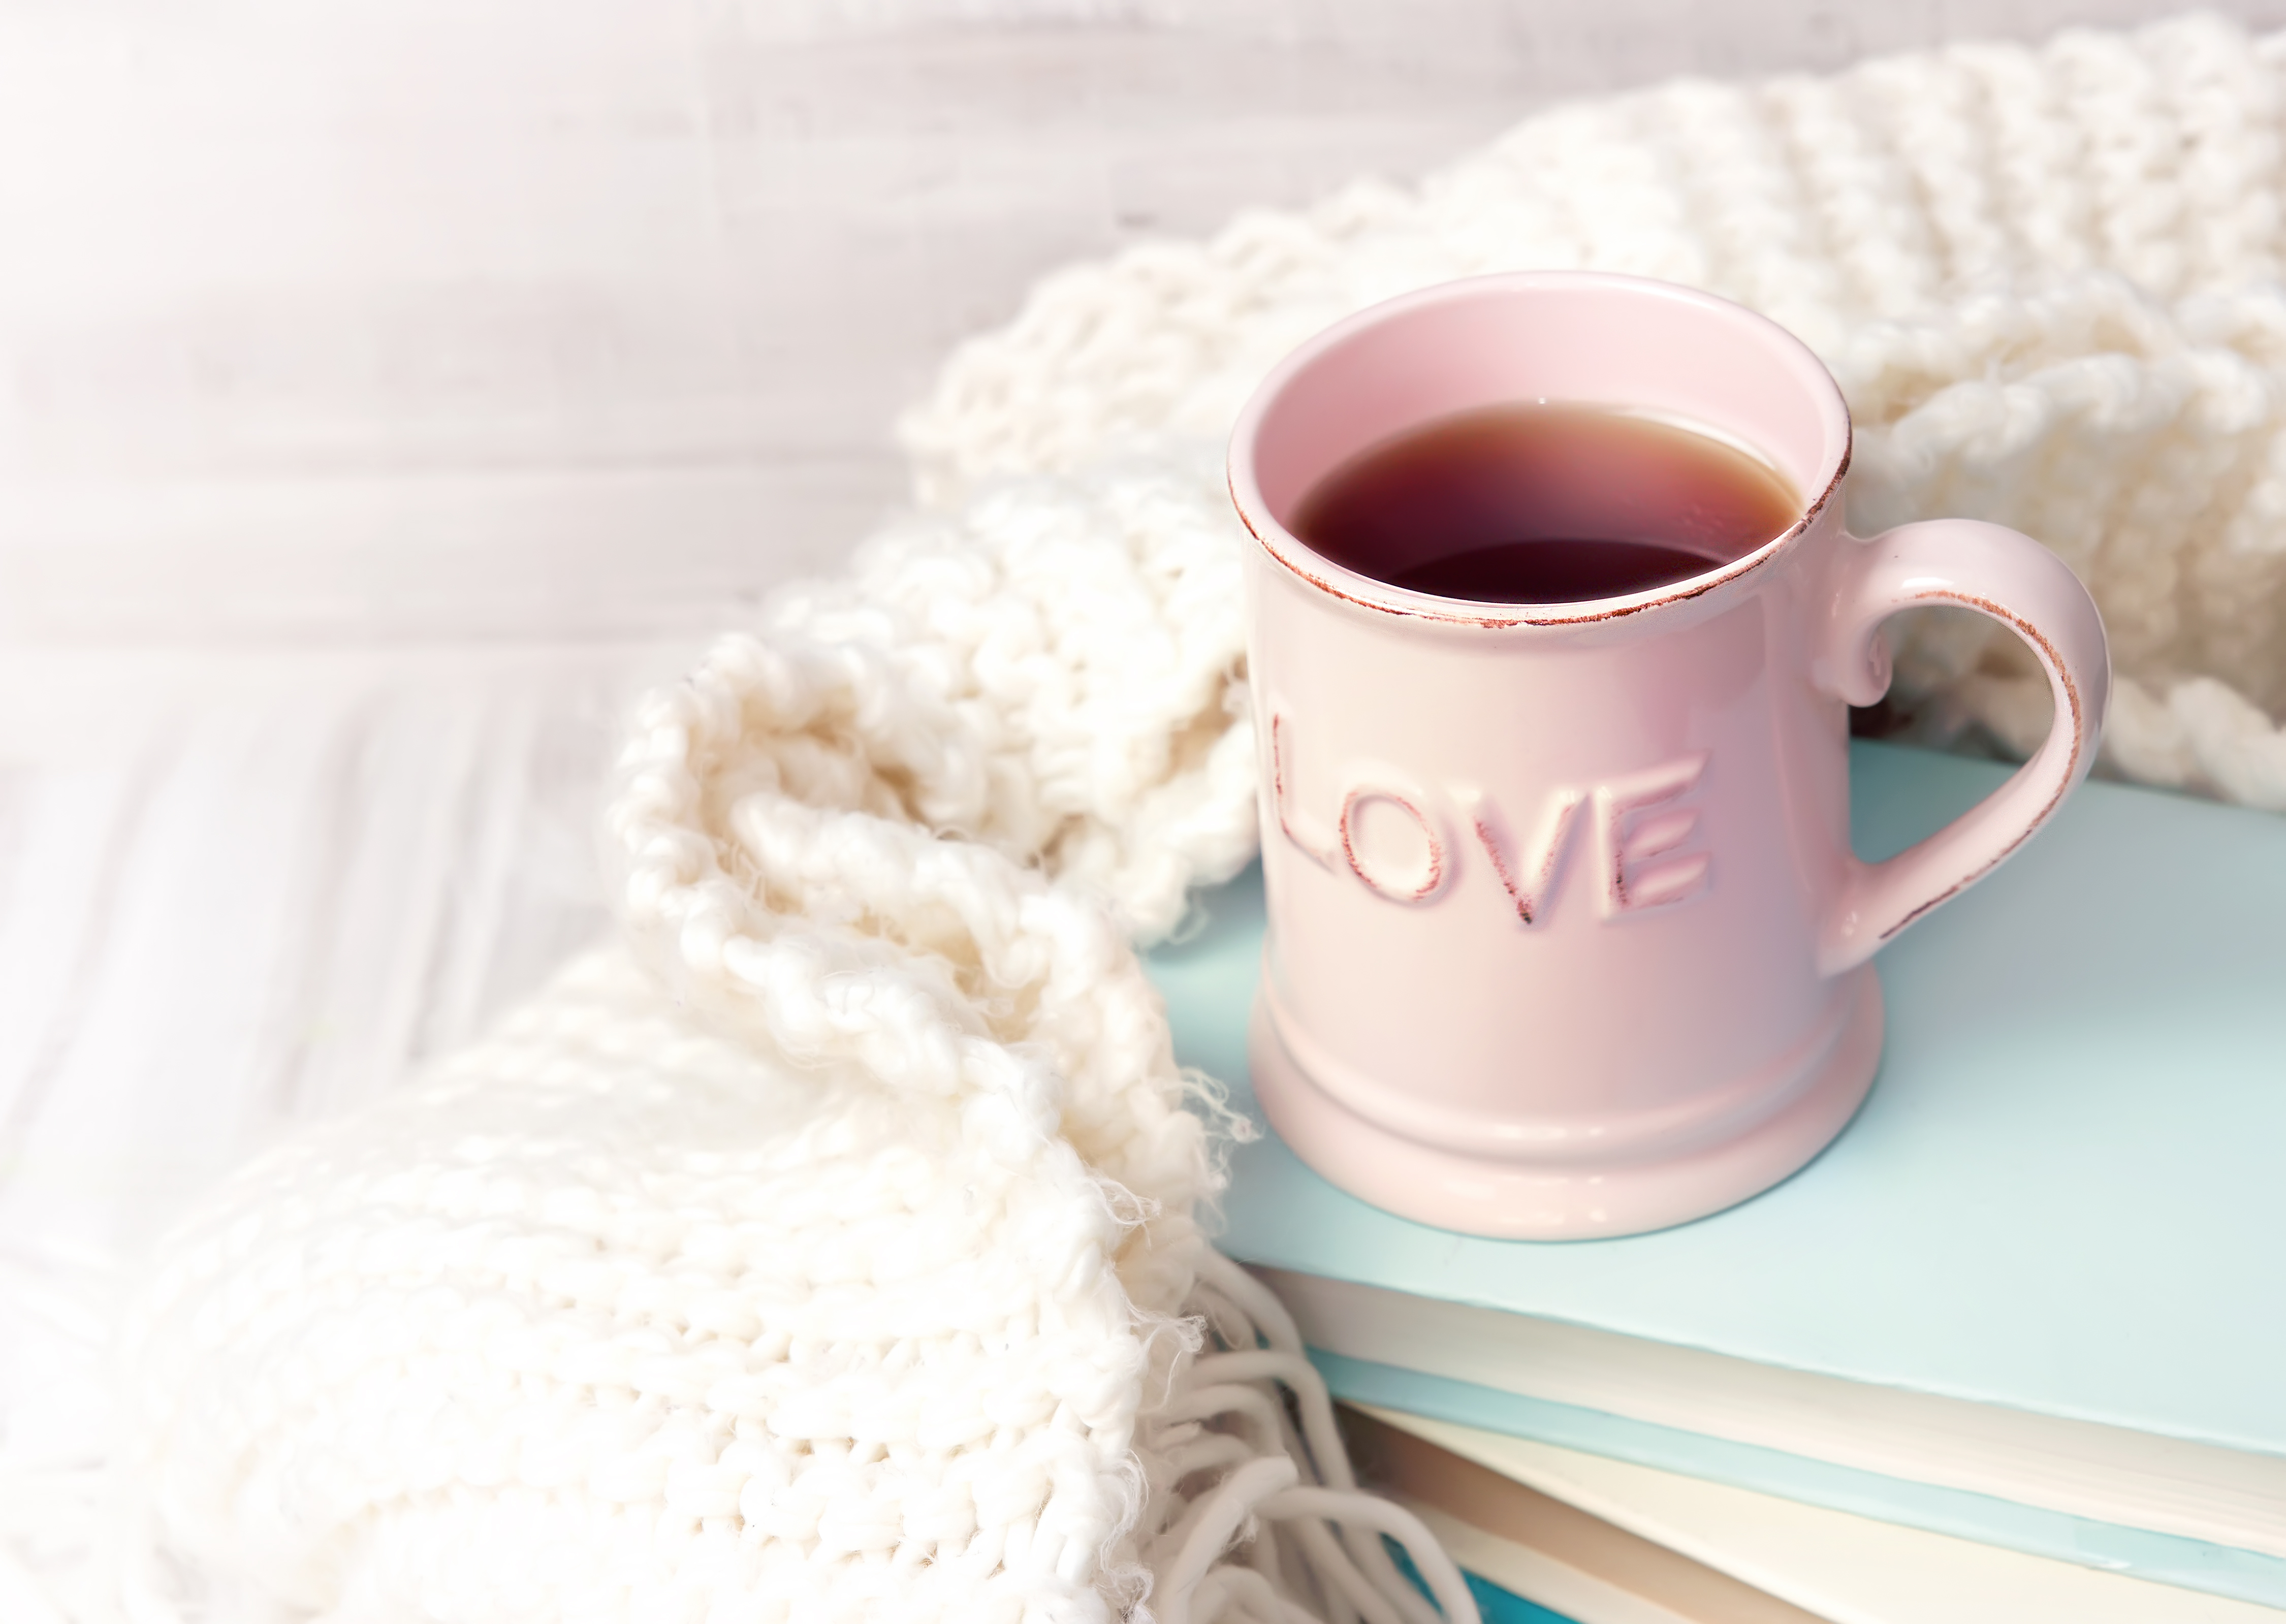 Pink coffee tea mug on stack of books with knits vintage background empty space for text. Valentine's day holiday icon. Retro  literature concept.